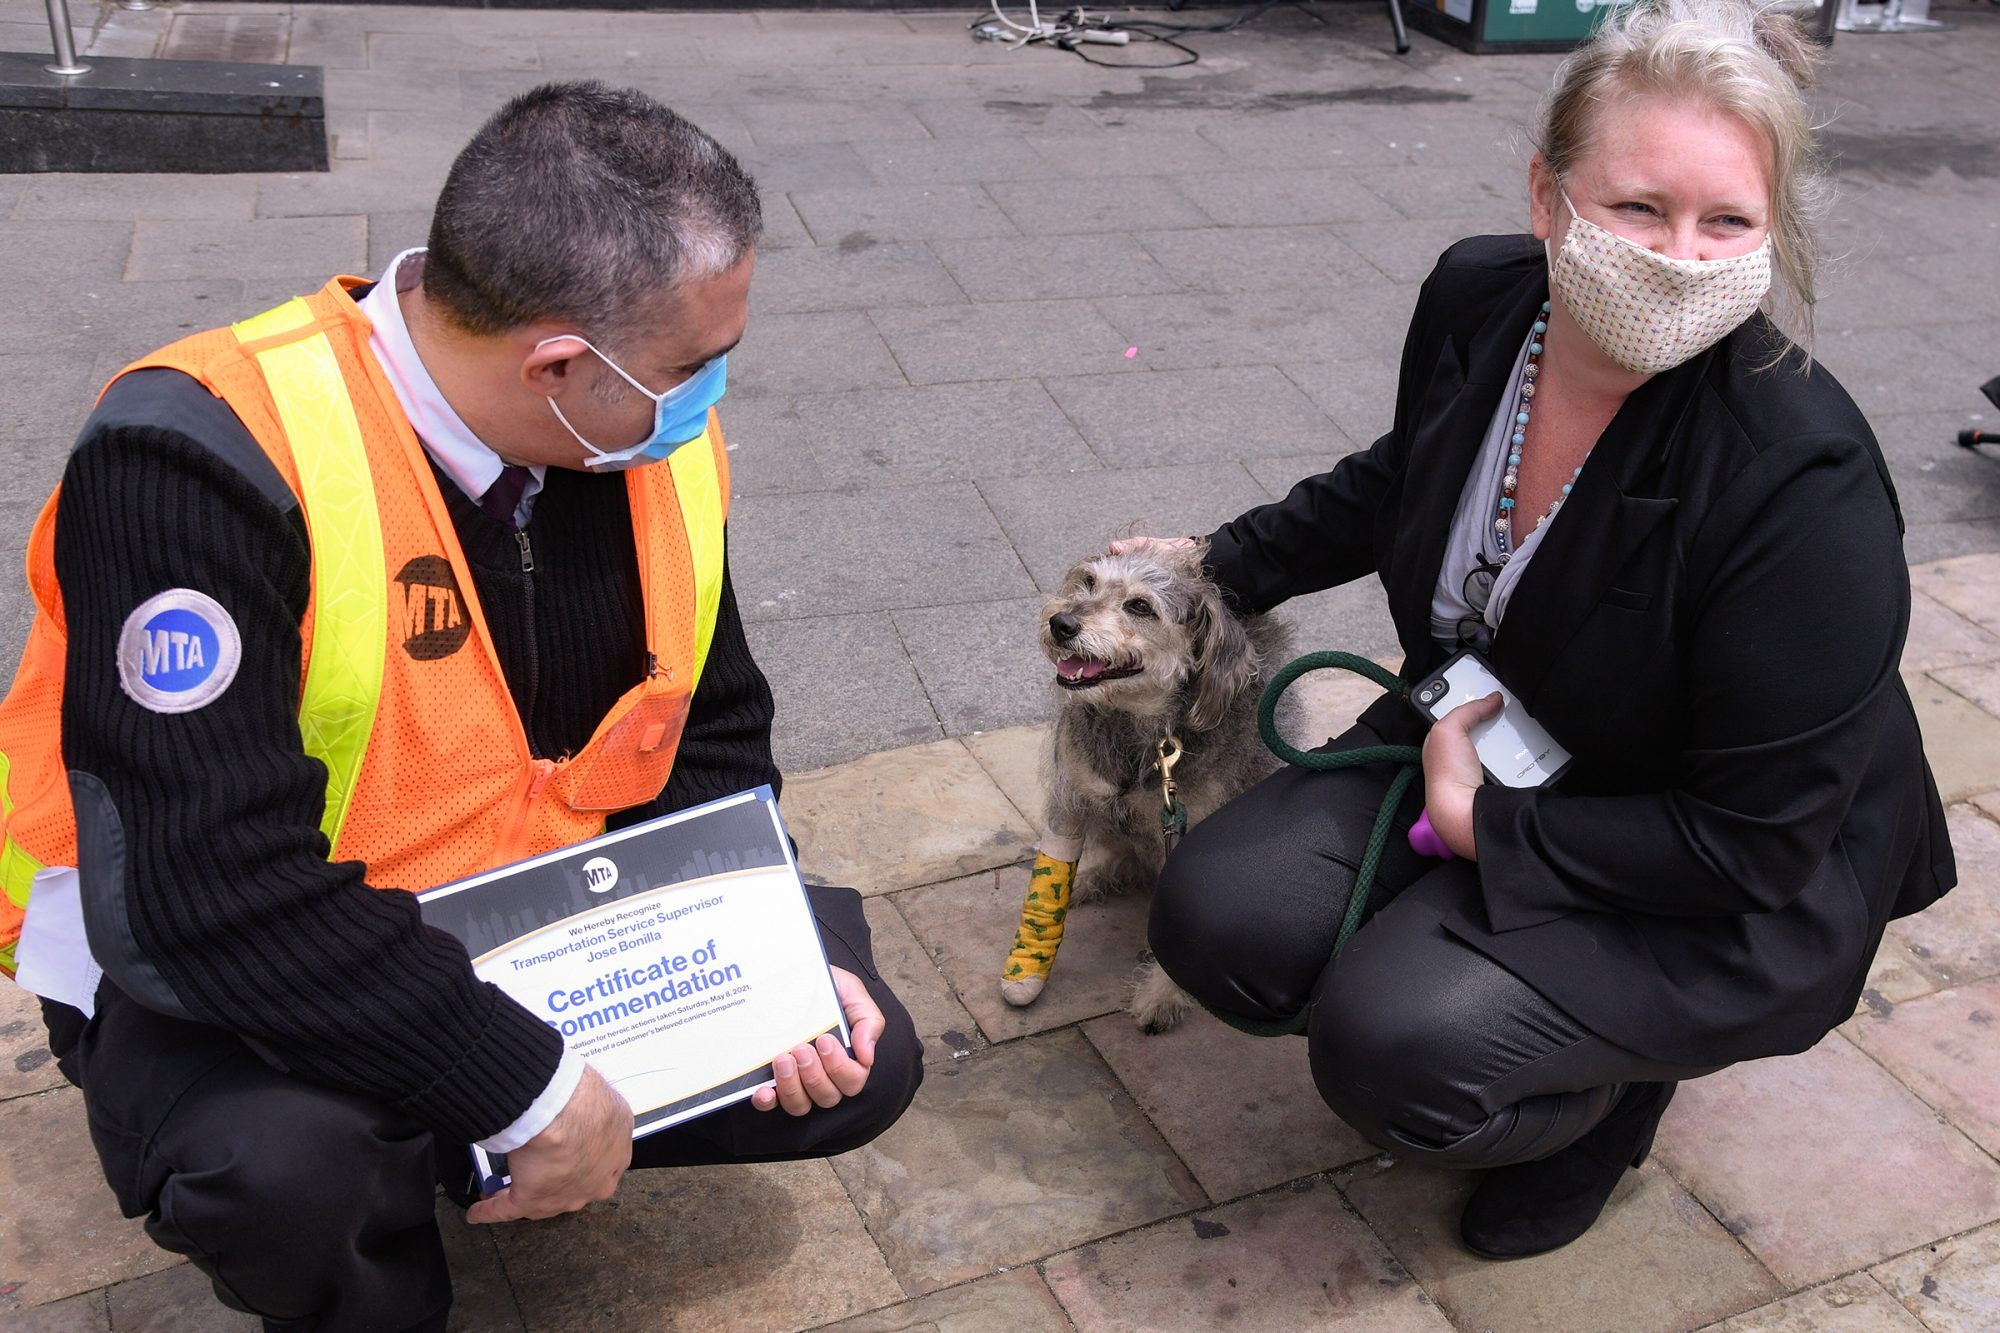 MTA Chief Customer Officer Sarah Meyer presented a certificate to Train Service Supervisor (TSS) Jose Bonilla at South Ferry Terminal on Tue., May 11, 2021, for his rescue of Lucy, a runaway dog, from the tracks on Saturday.